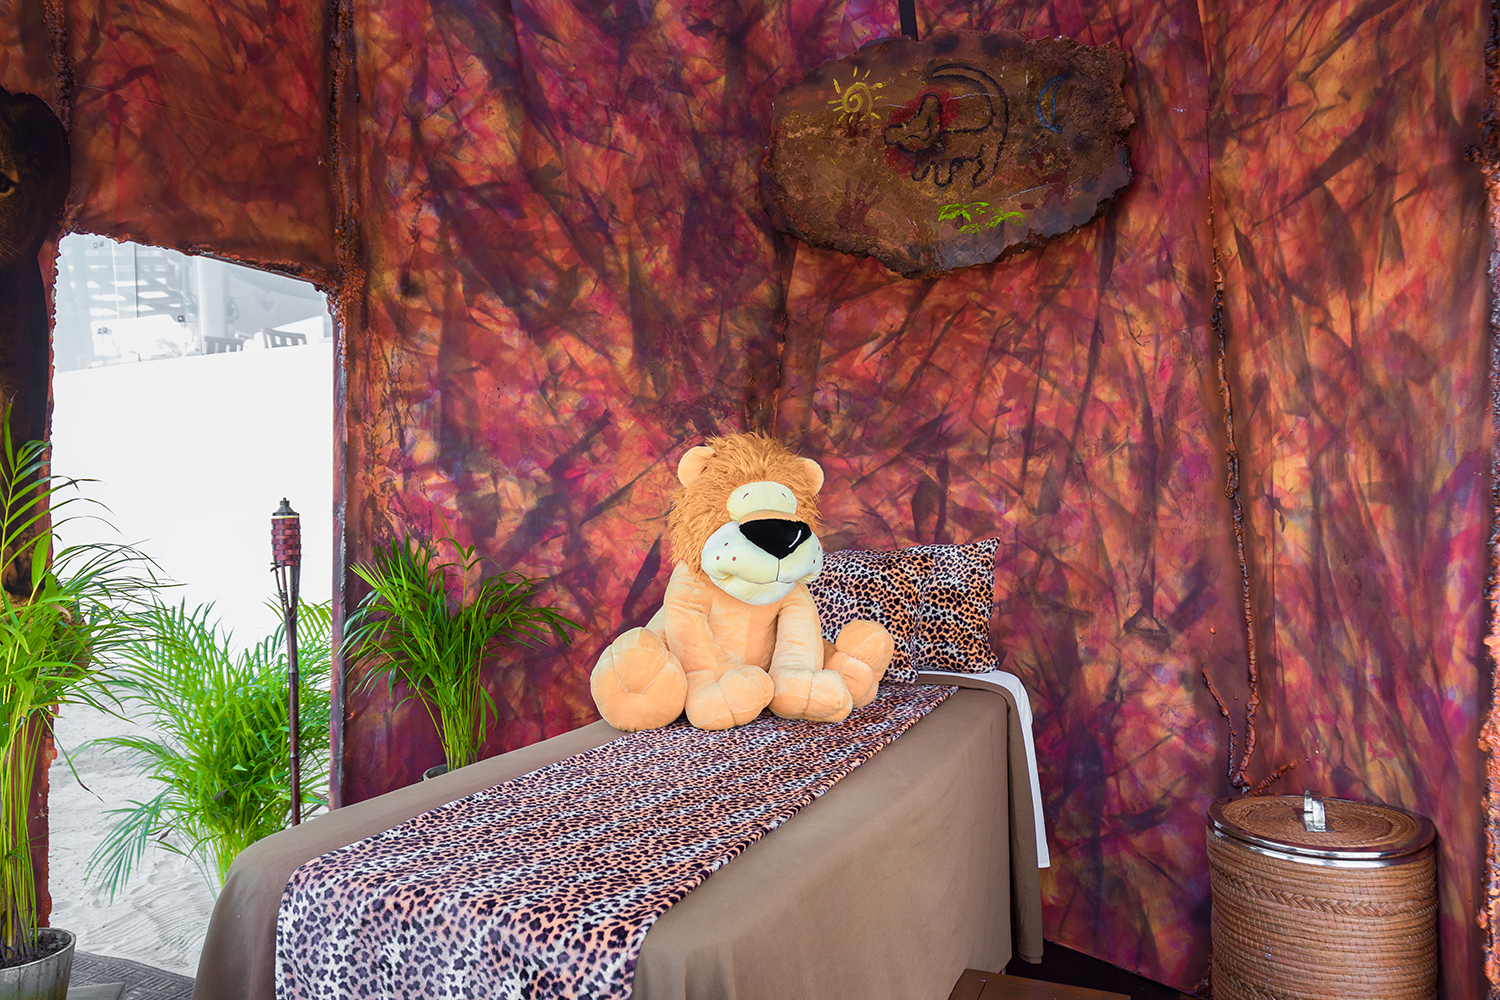 The Lion King Spa Cabana will be available through the first week of August.